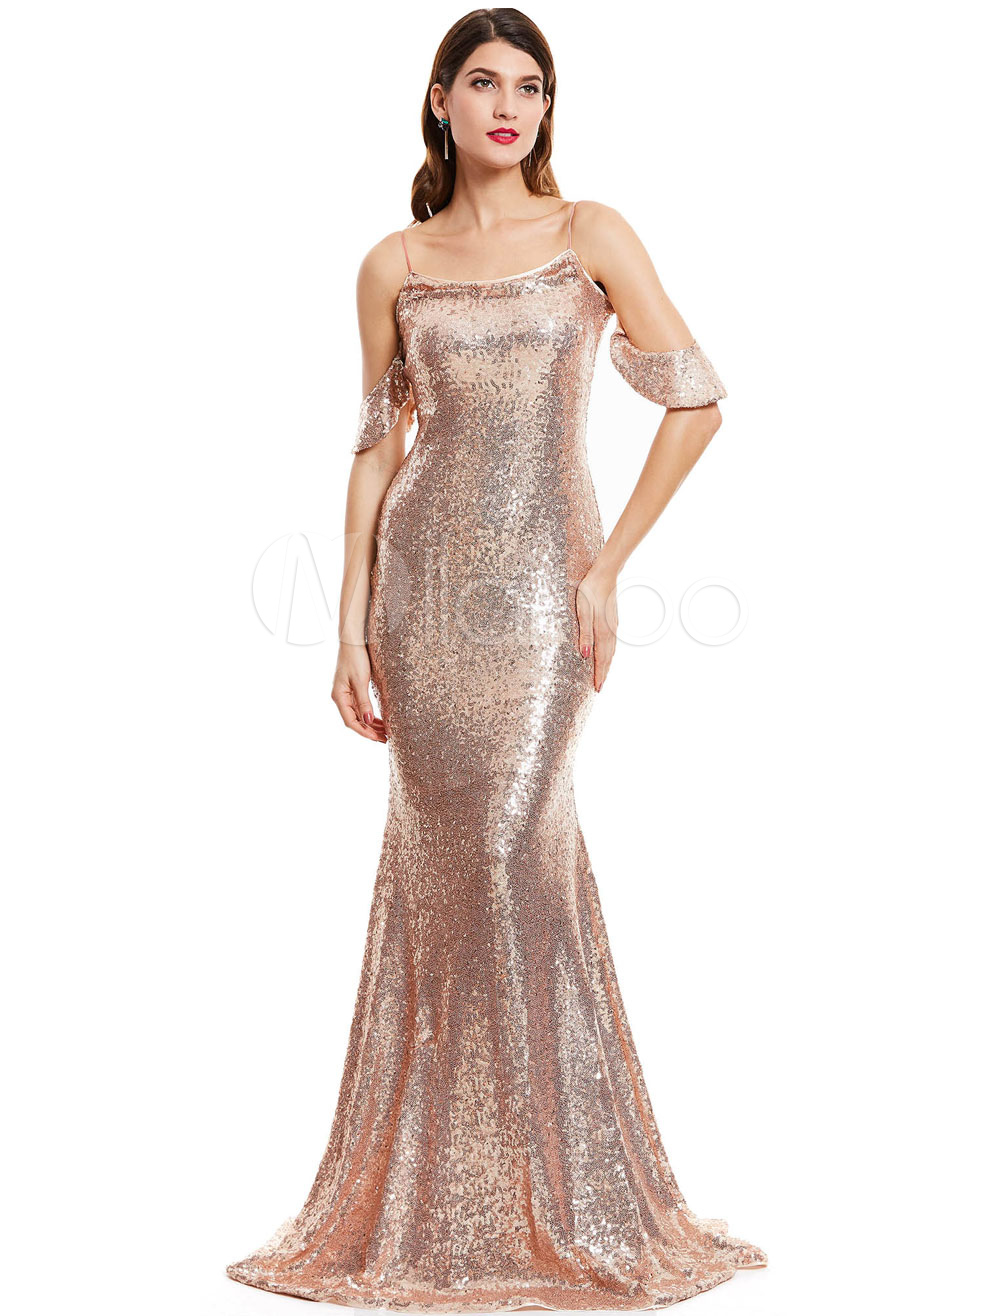 Buy Sequin Prom Dresses Mermaid Formal Evening Dress Off Shoulder Straps Evening Gown With Train for $92.39 in Milanoo store